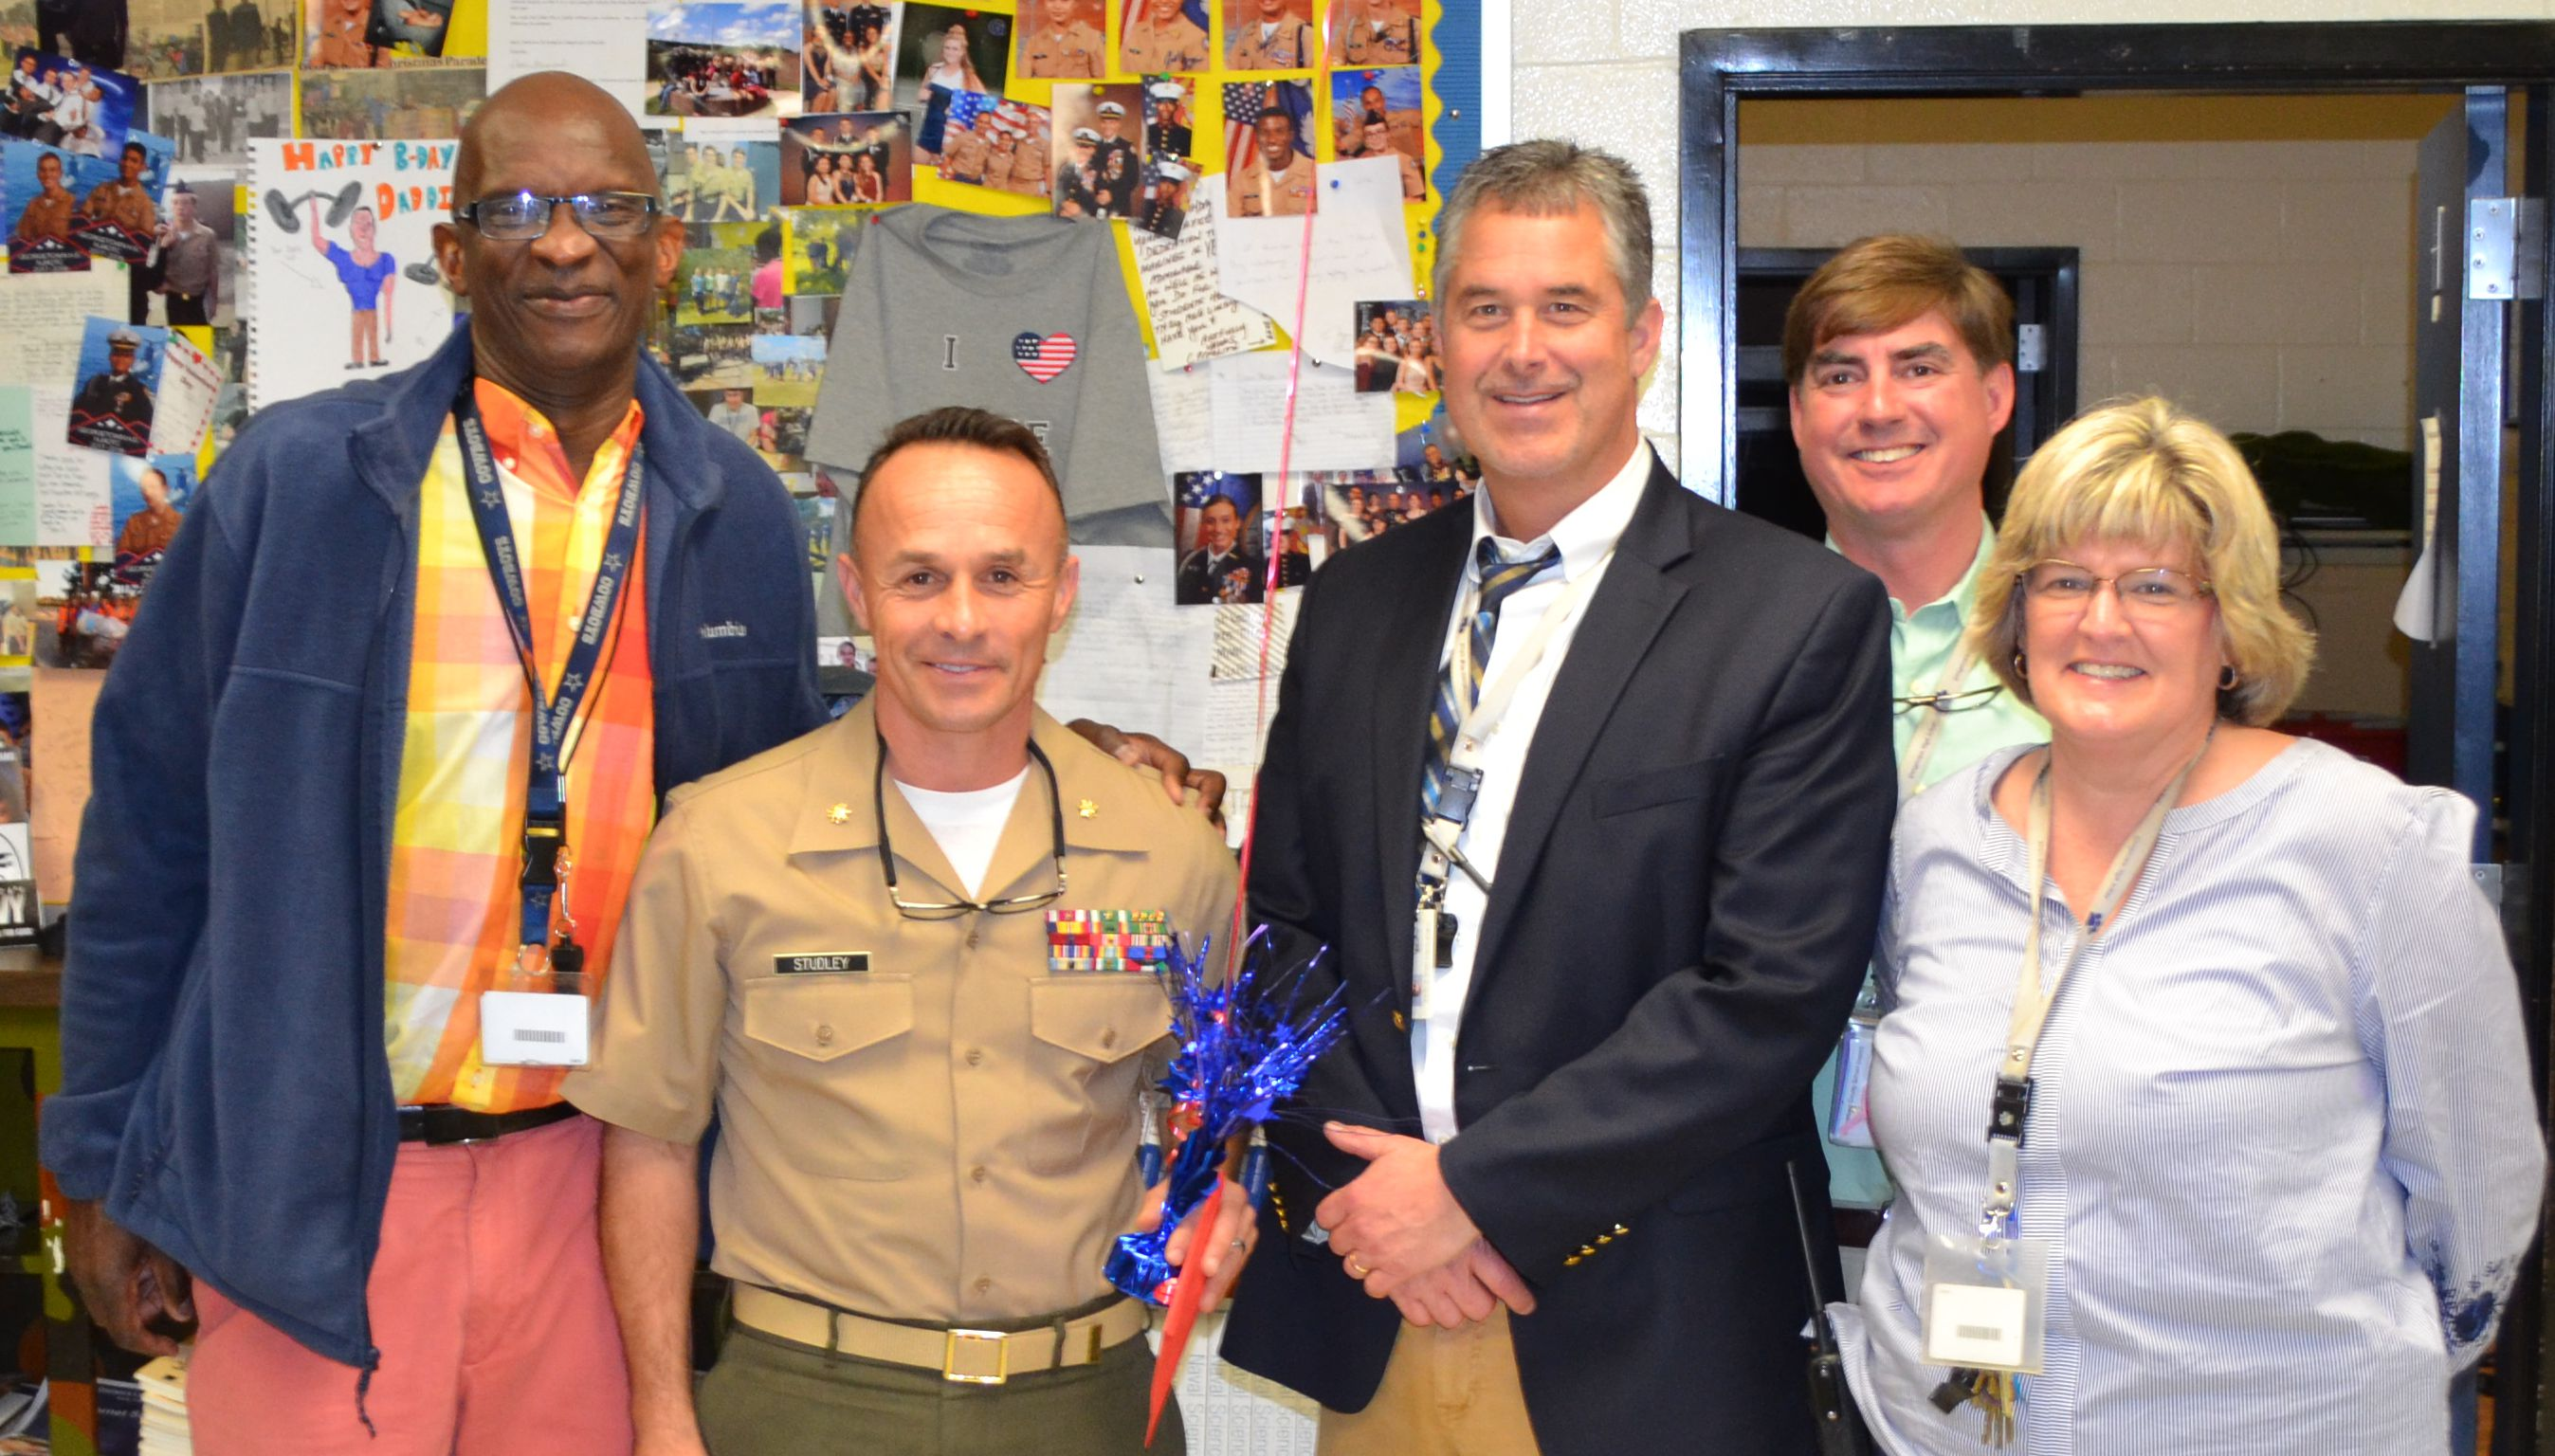 Major Studley congratulated by the GHS Administrators